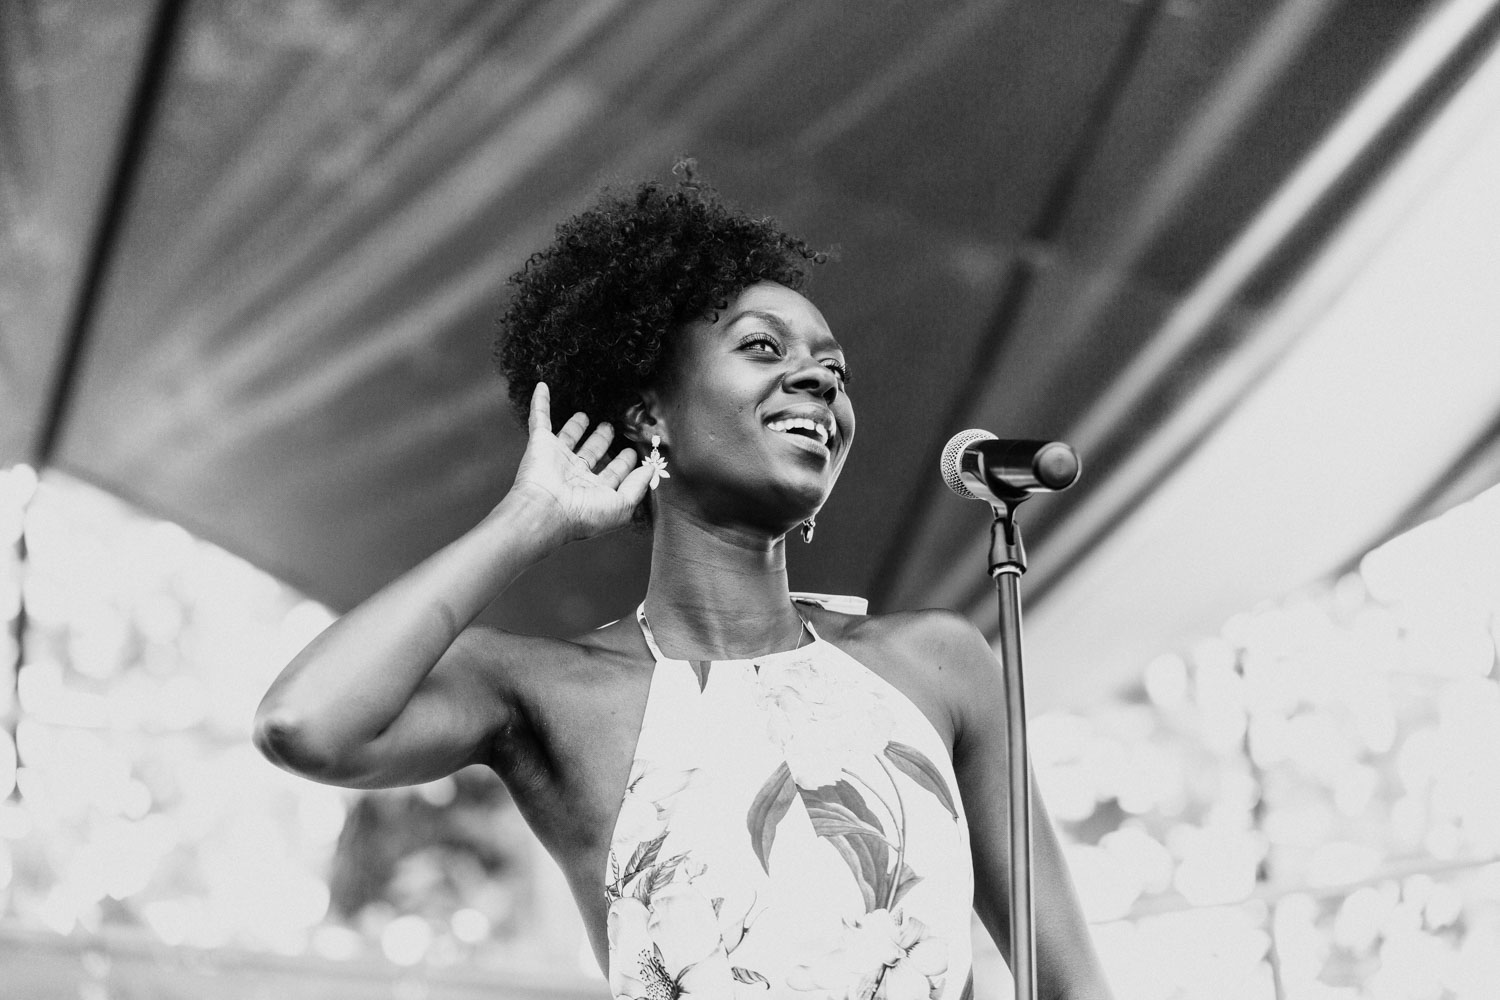 Singer Nayo Jones opens up day two of French Quarter Fest on Friday, April 7th.